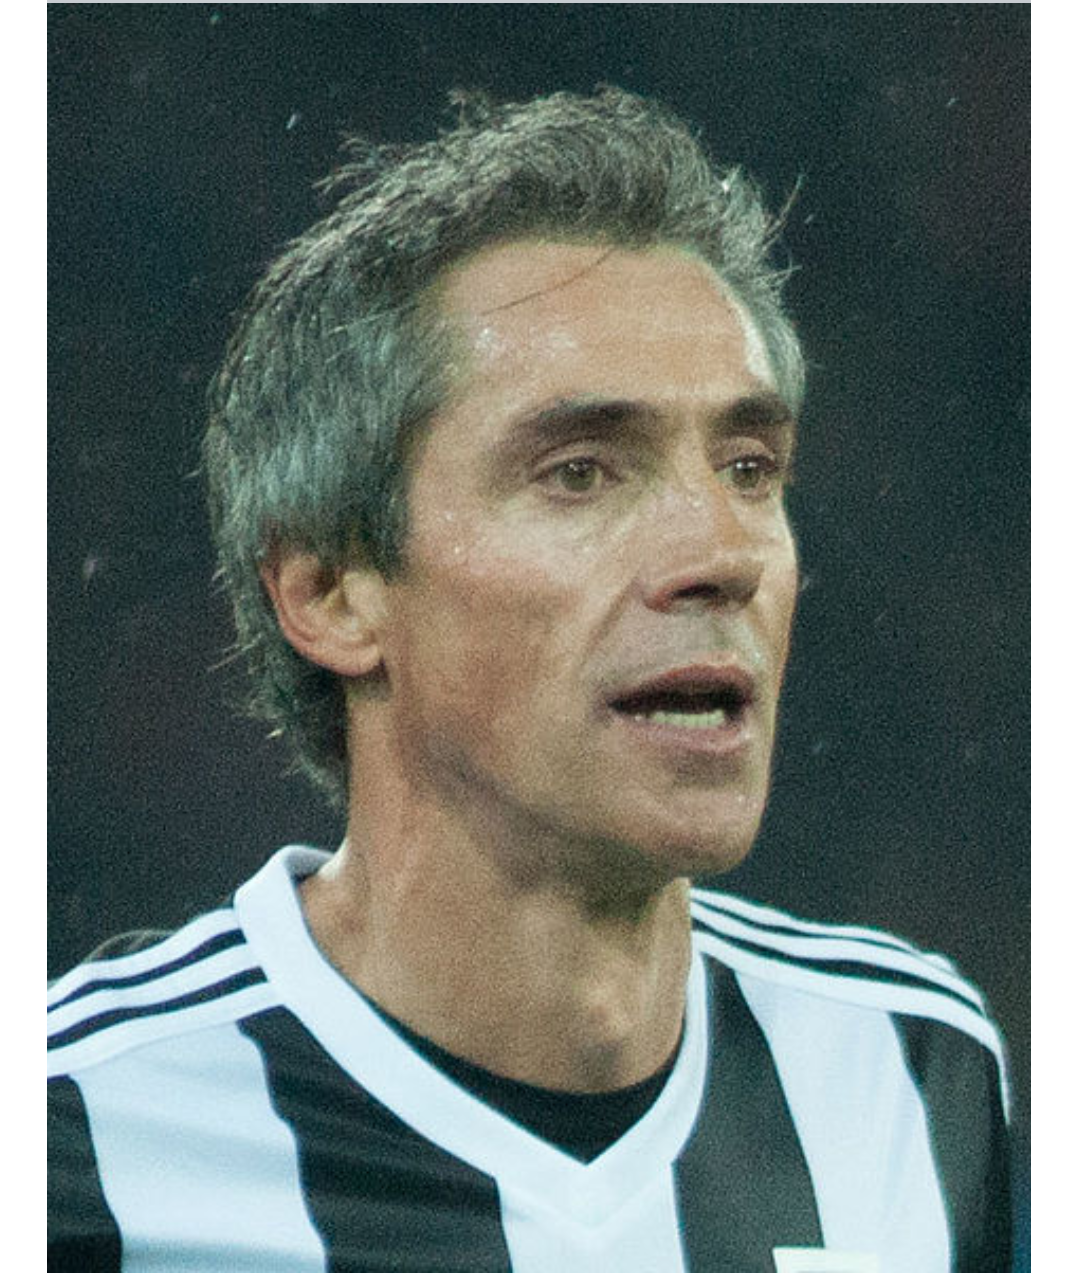 Paulo Sousa. Photo by Ludovic Peron (cropped). License: https://creativecommons.org/licenses/by-sa/3.0/deed.en